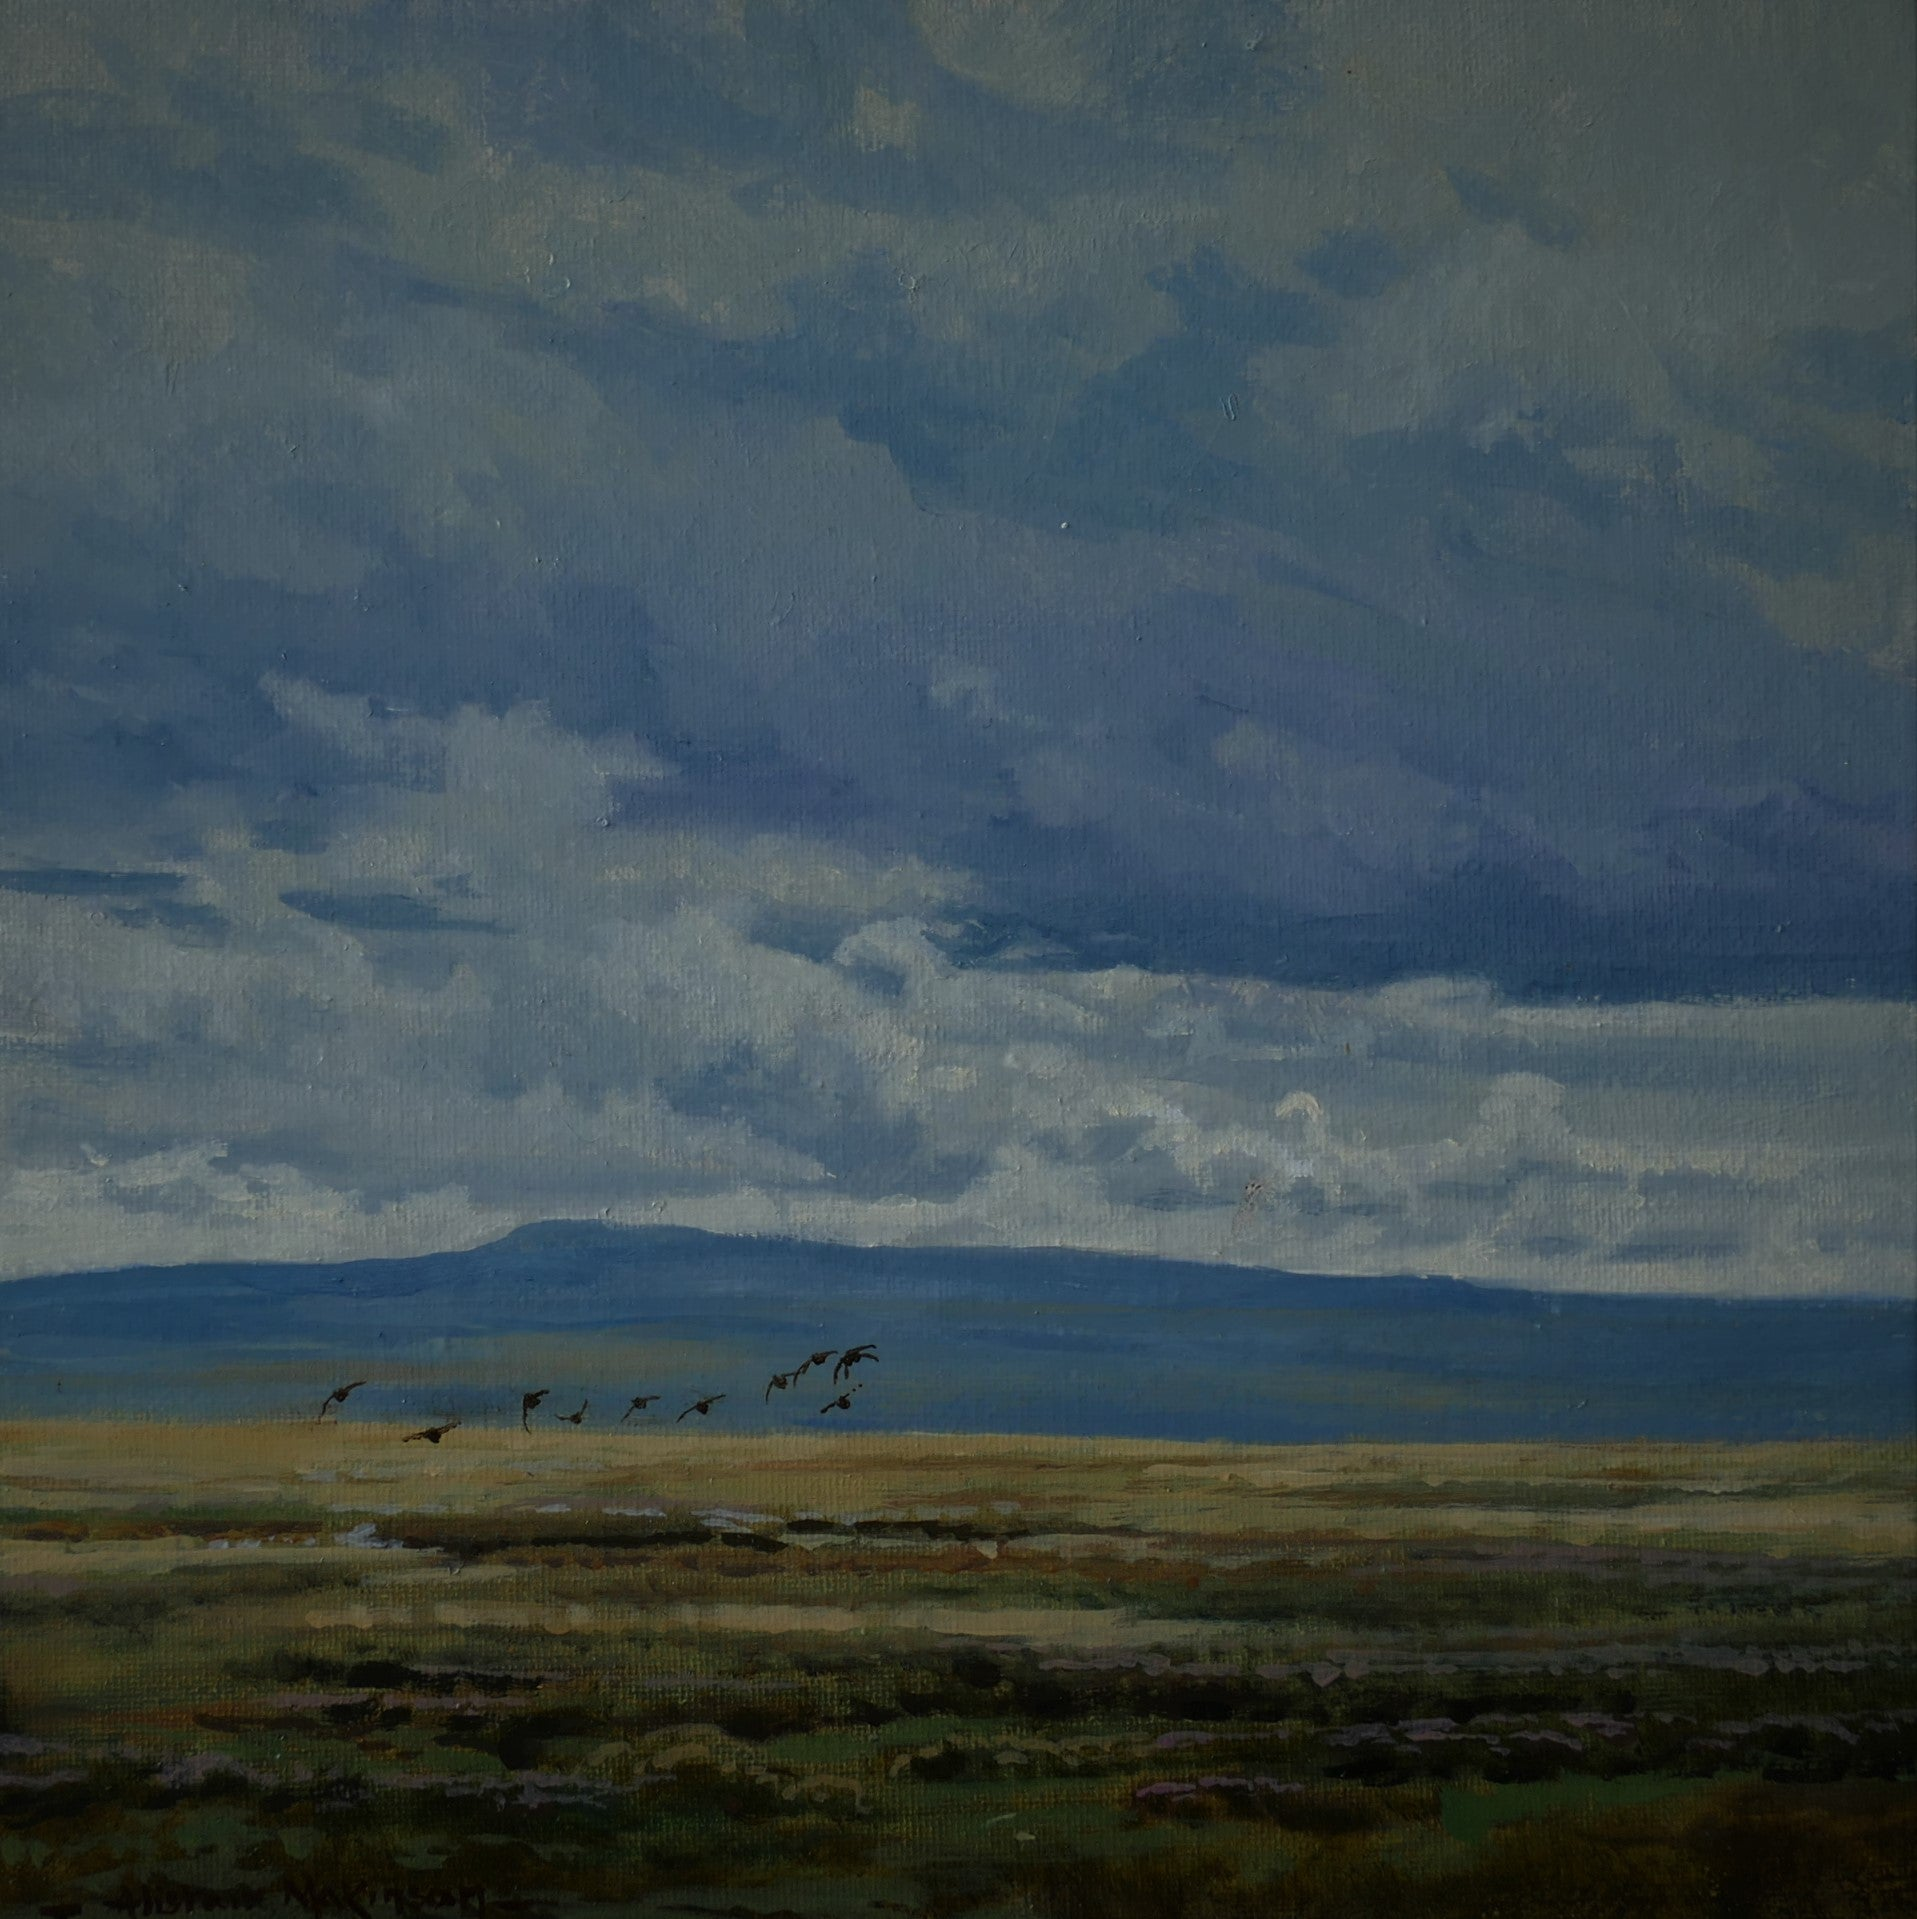 'Stormy Skies' - Original Oil Painting by Alistair Makinson - 20 x 20cm